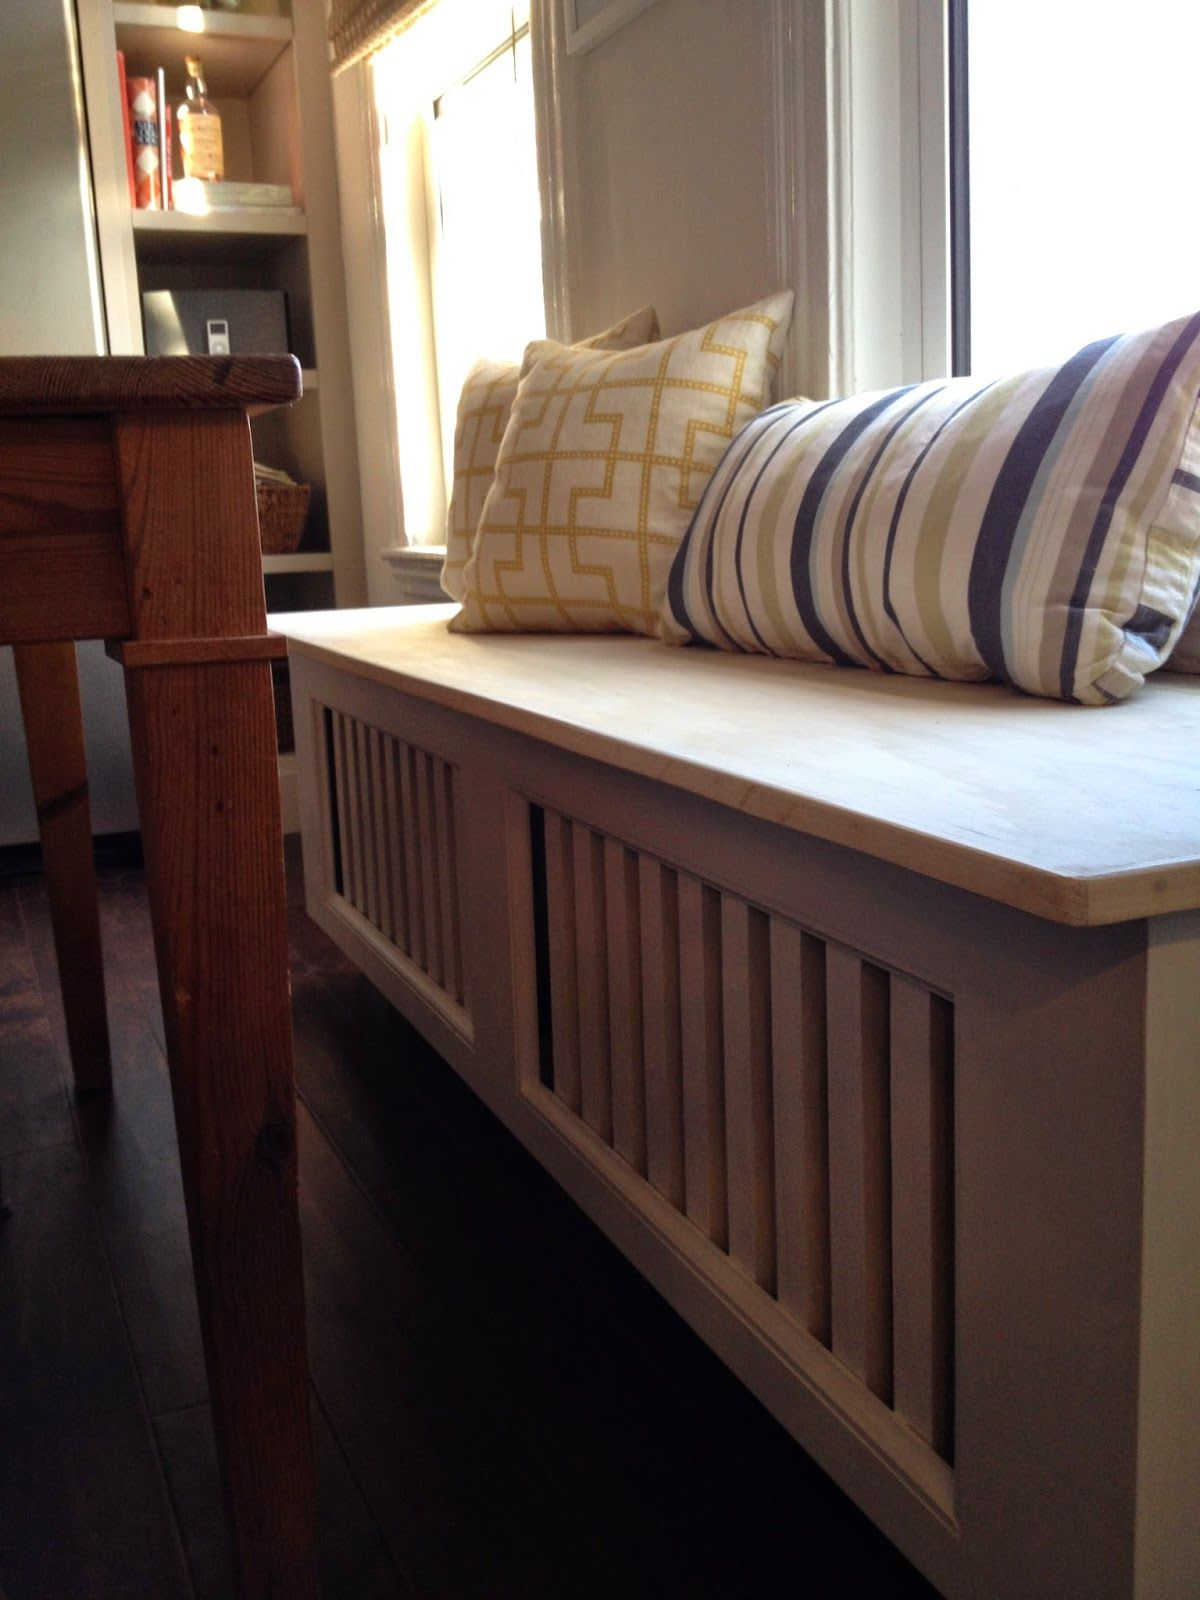 Bed under window ideas  bench radiator cover  salon ideas  pinterest  radiators house